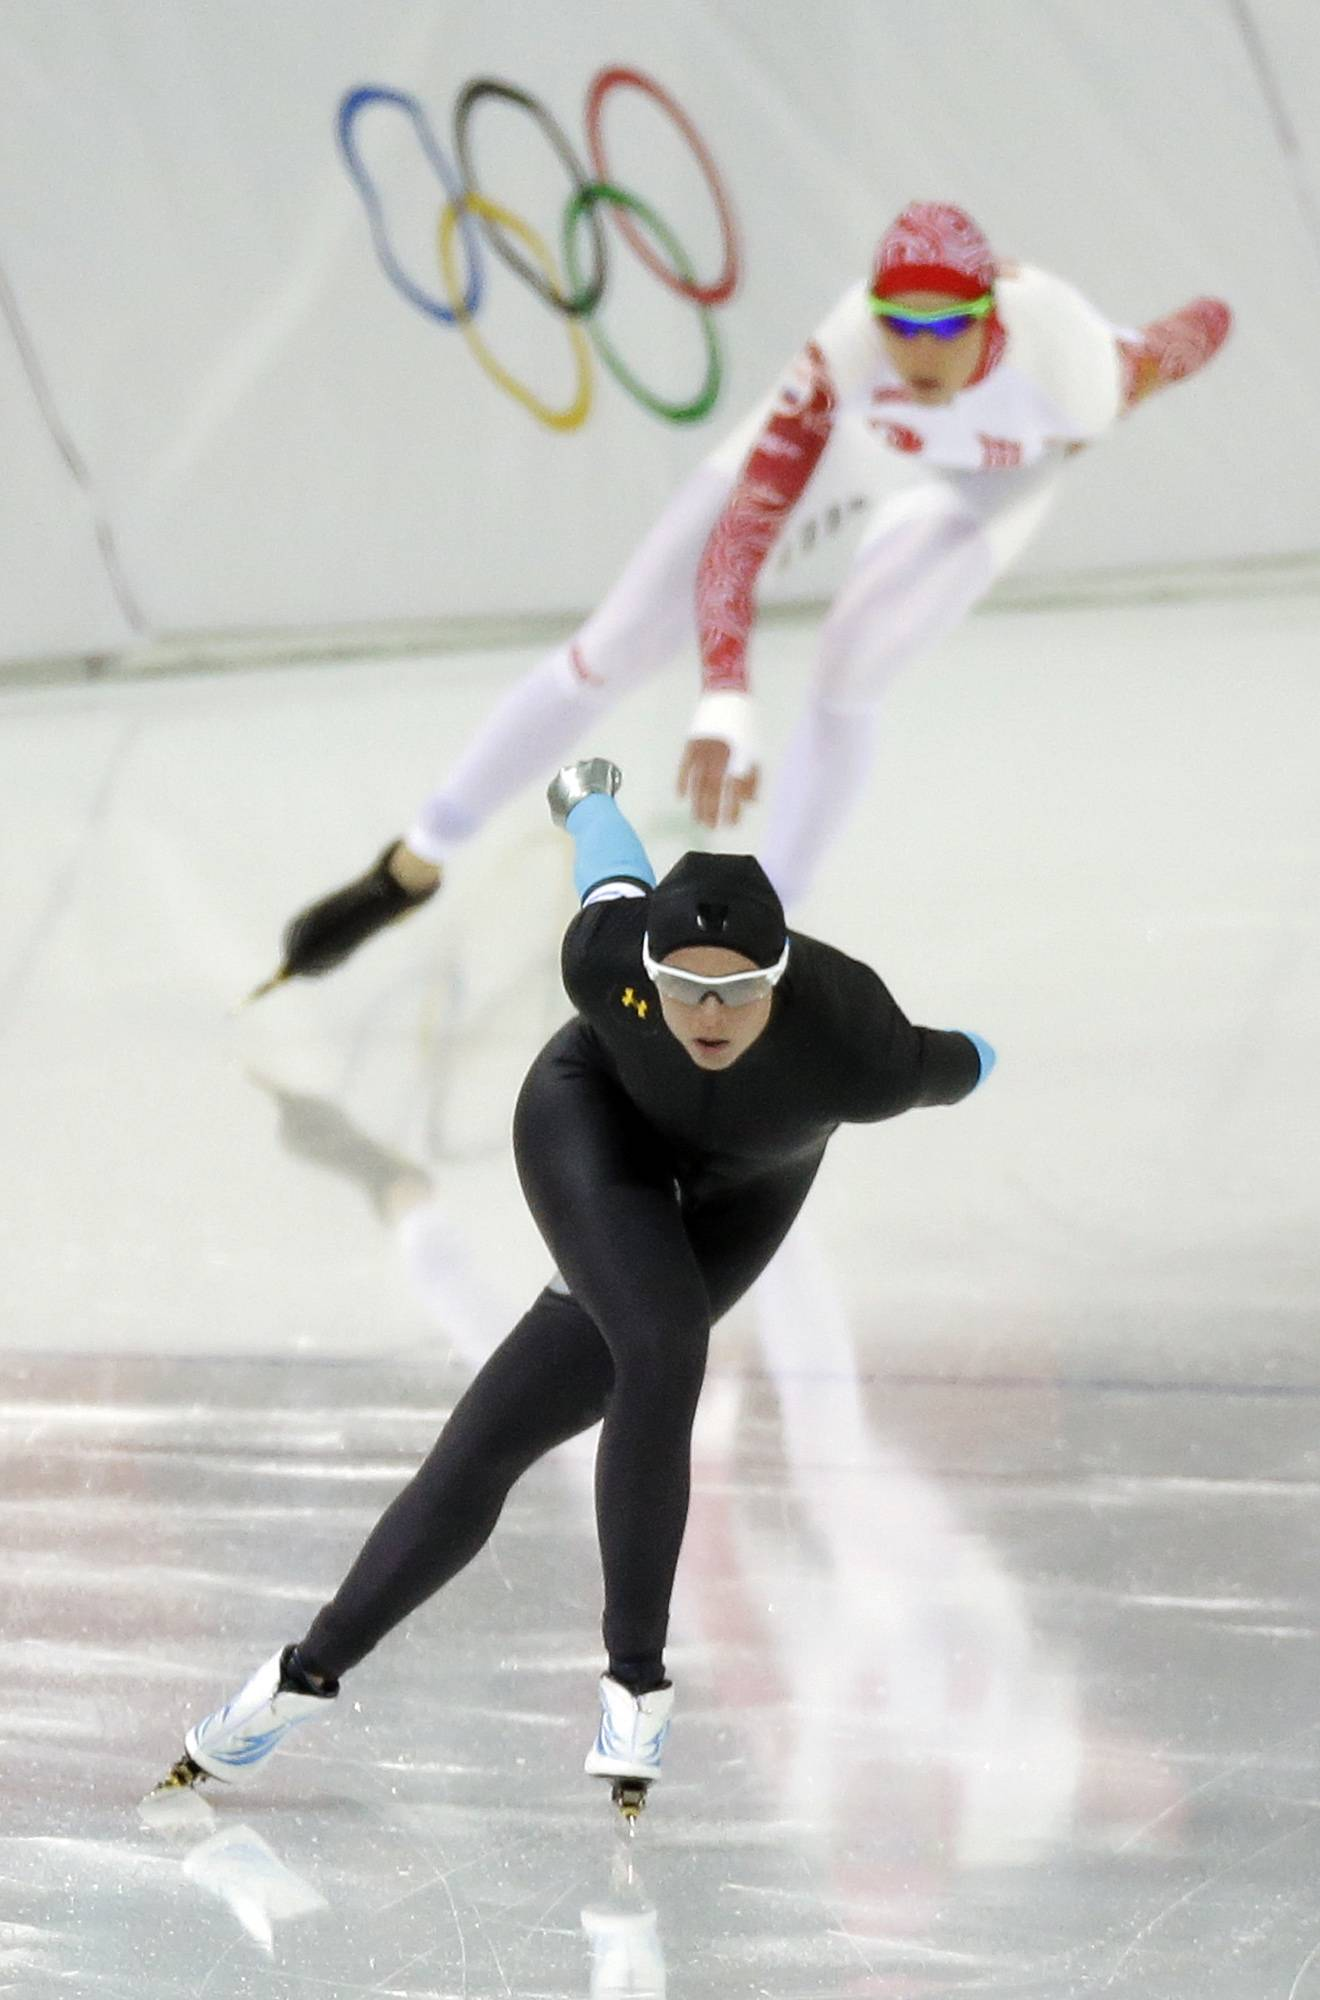 Brittany Bowe of the U.S., front and Russia's Yekaterina Lobysheva compete in the women's 1,500-meter race at the Adler Arena Skating Center during the 2014 Winter Olympics in Sochi, Russia, Sunday, Feb. 16, 2014.